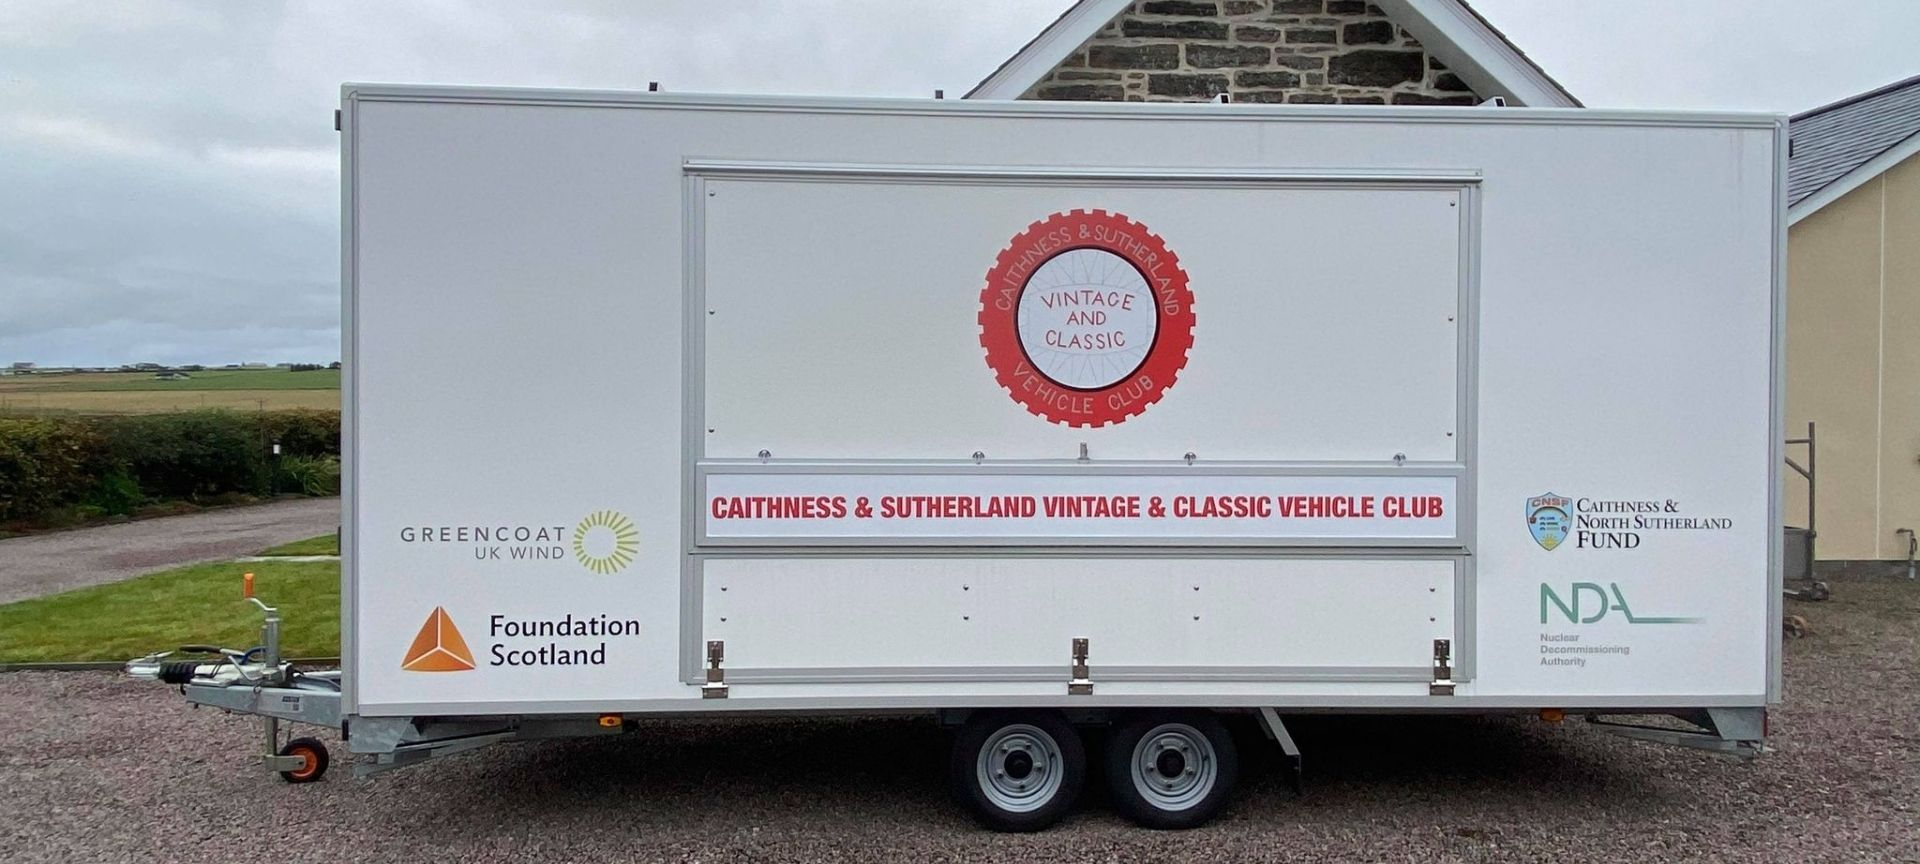 Caithness and Sutherland Vintage and Classic Vehicle Club Purchases a New Trailer